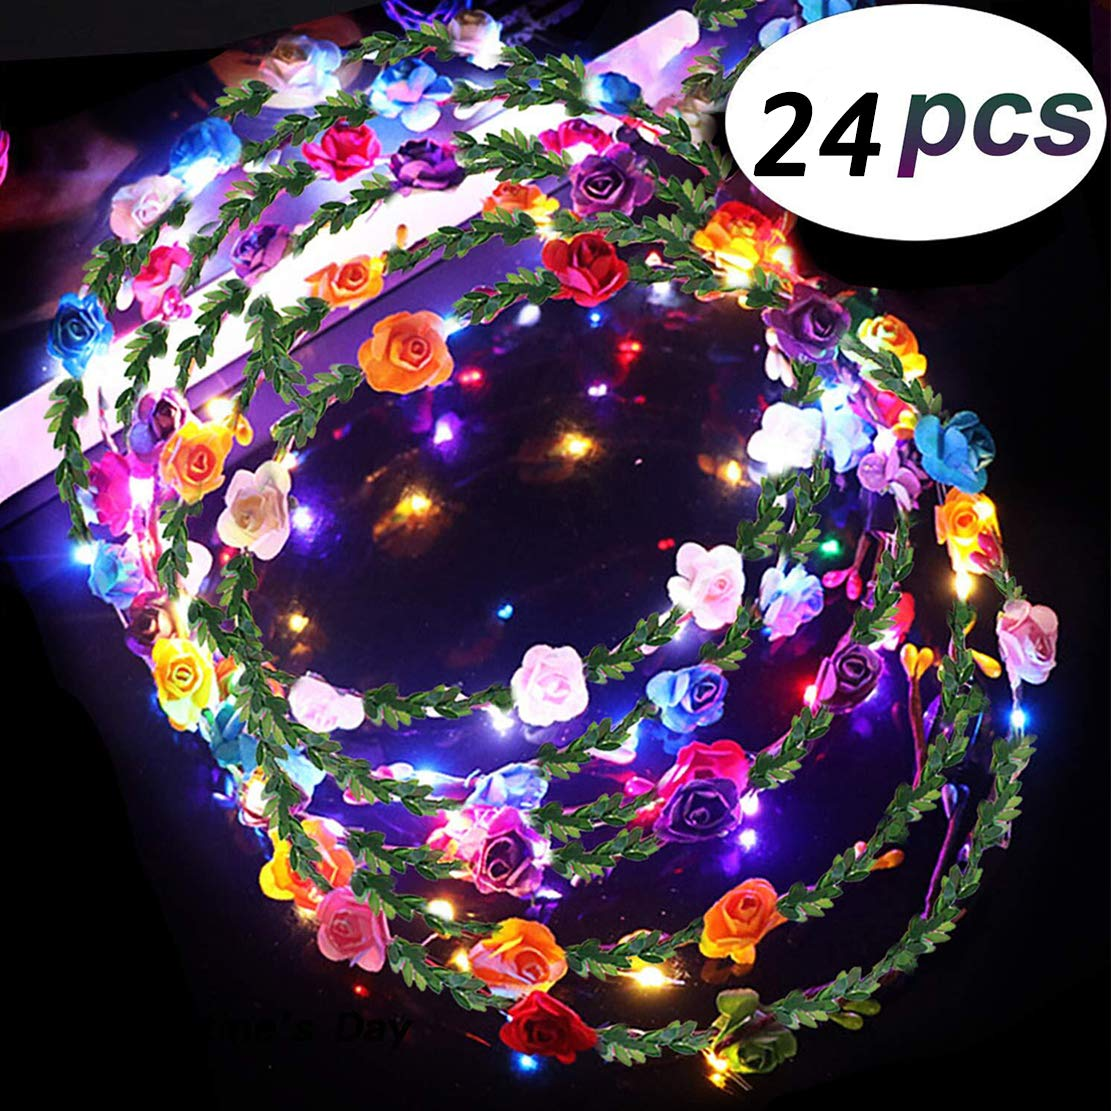 24 Pack LED Flower Headband Crown Glow in The Dark Party Favors Adjustable Flower Wreath Headband 10 LED Flower Headpiece Headdress for Girls Women Wedding Dress Up Gift Graduation Party Supplies